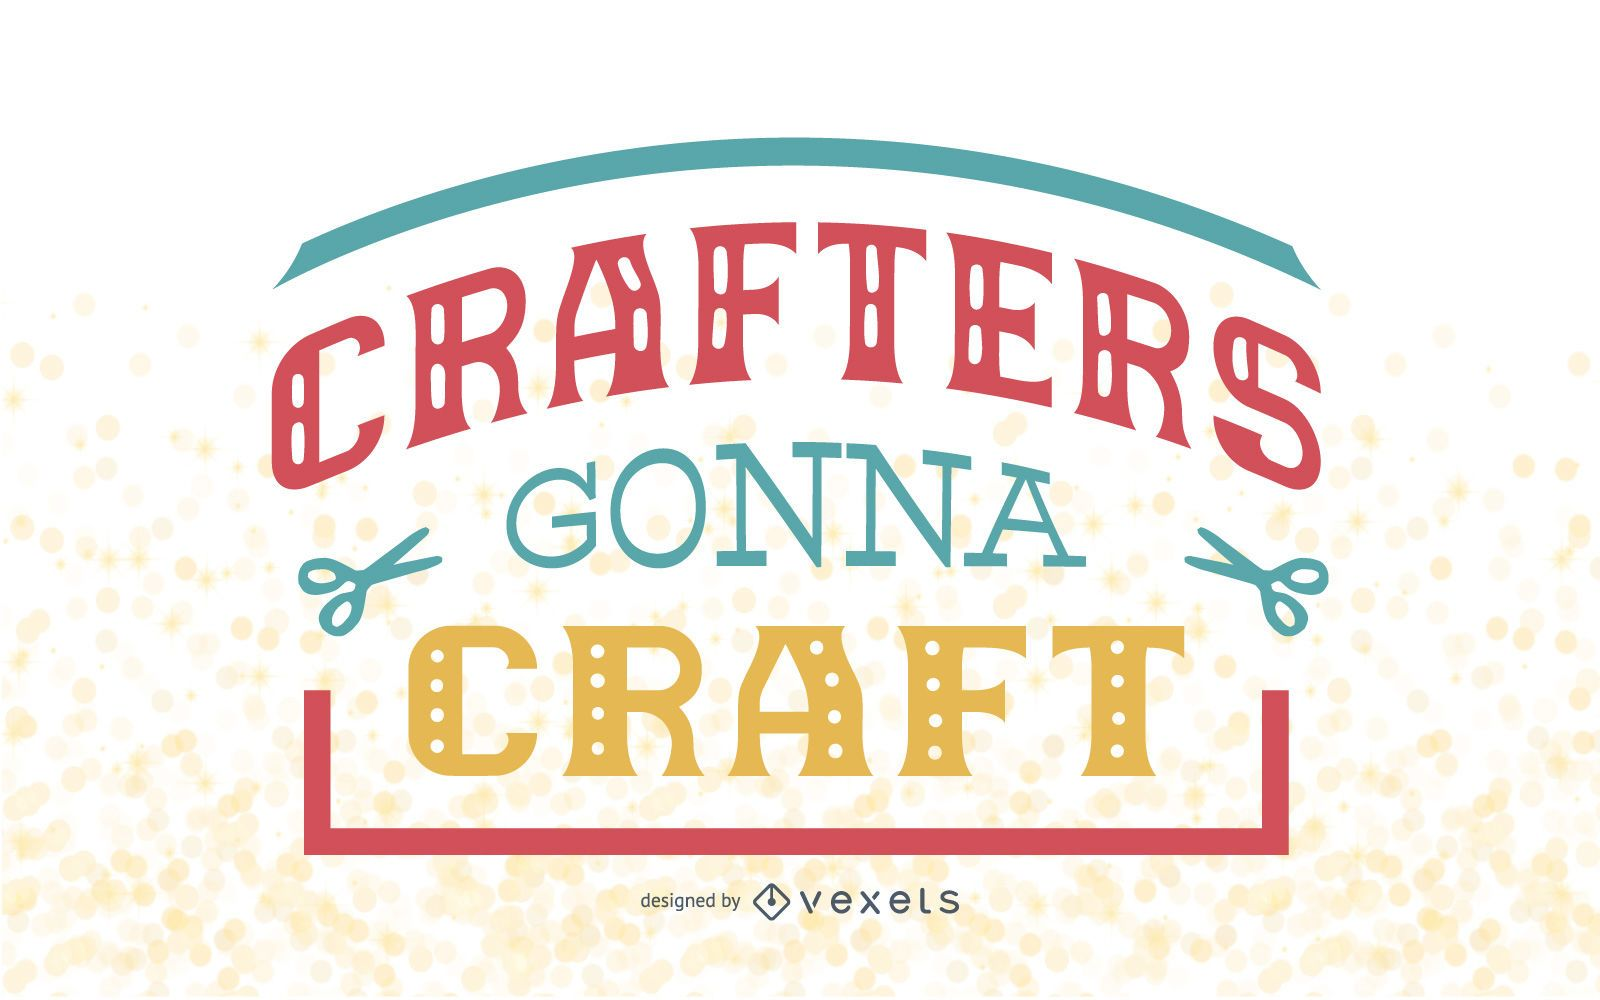 Crafters lettering design